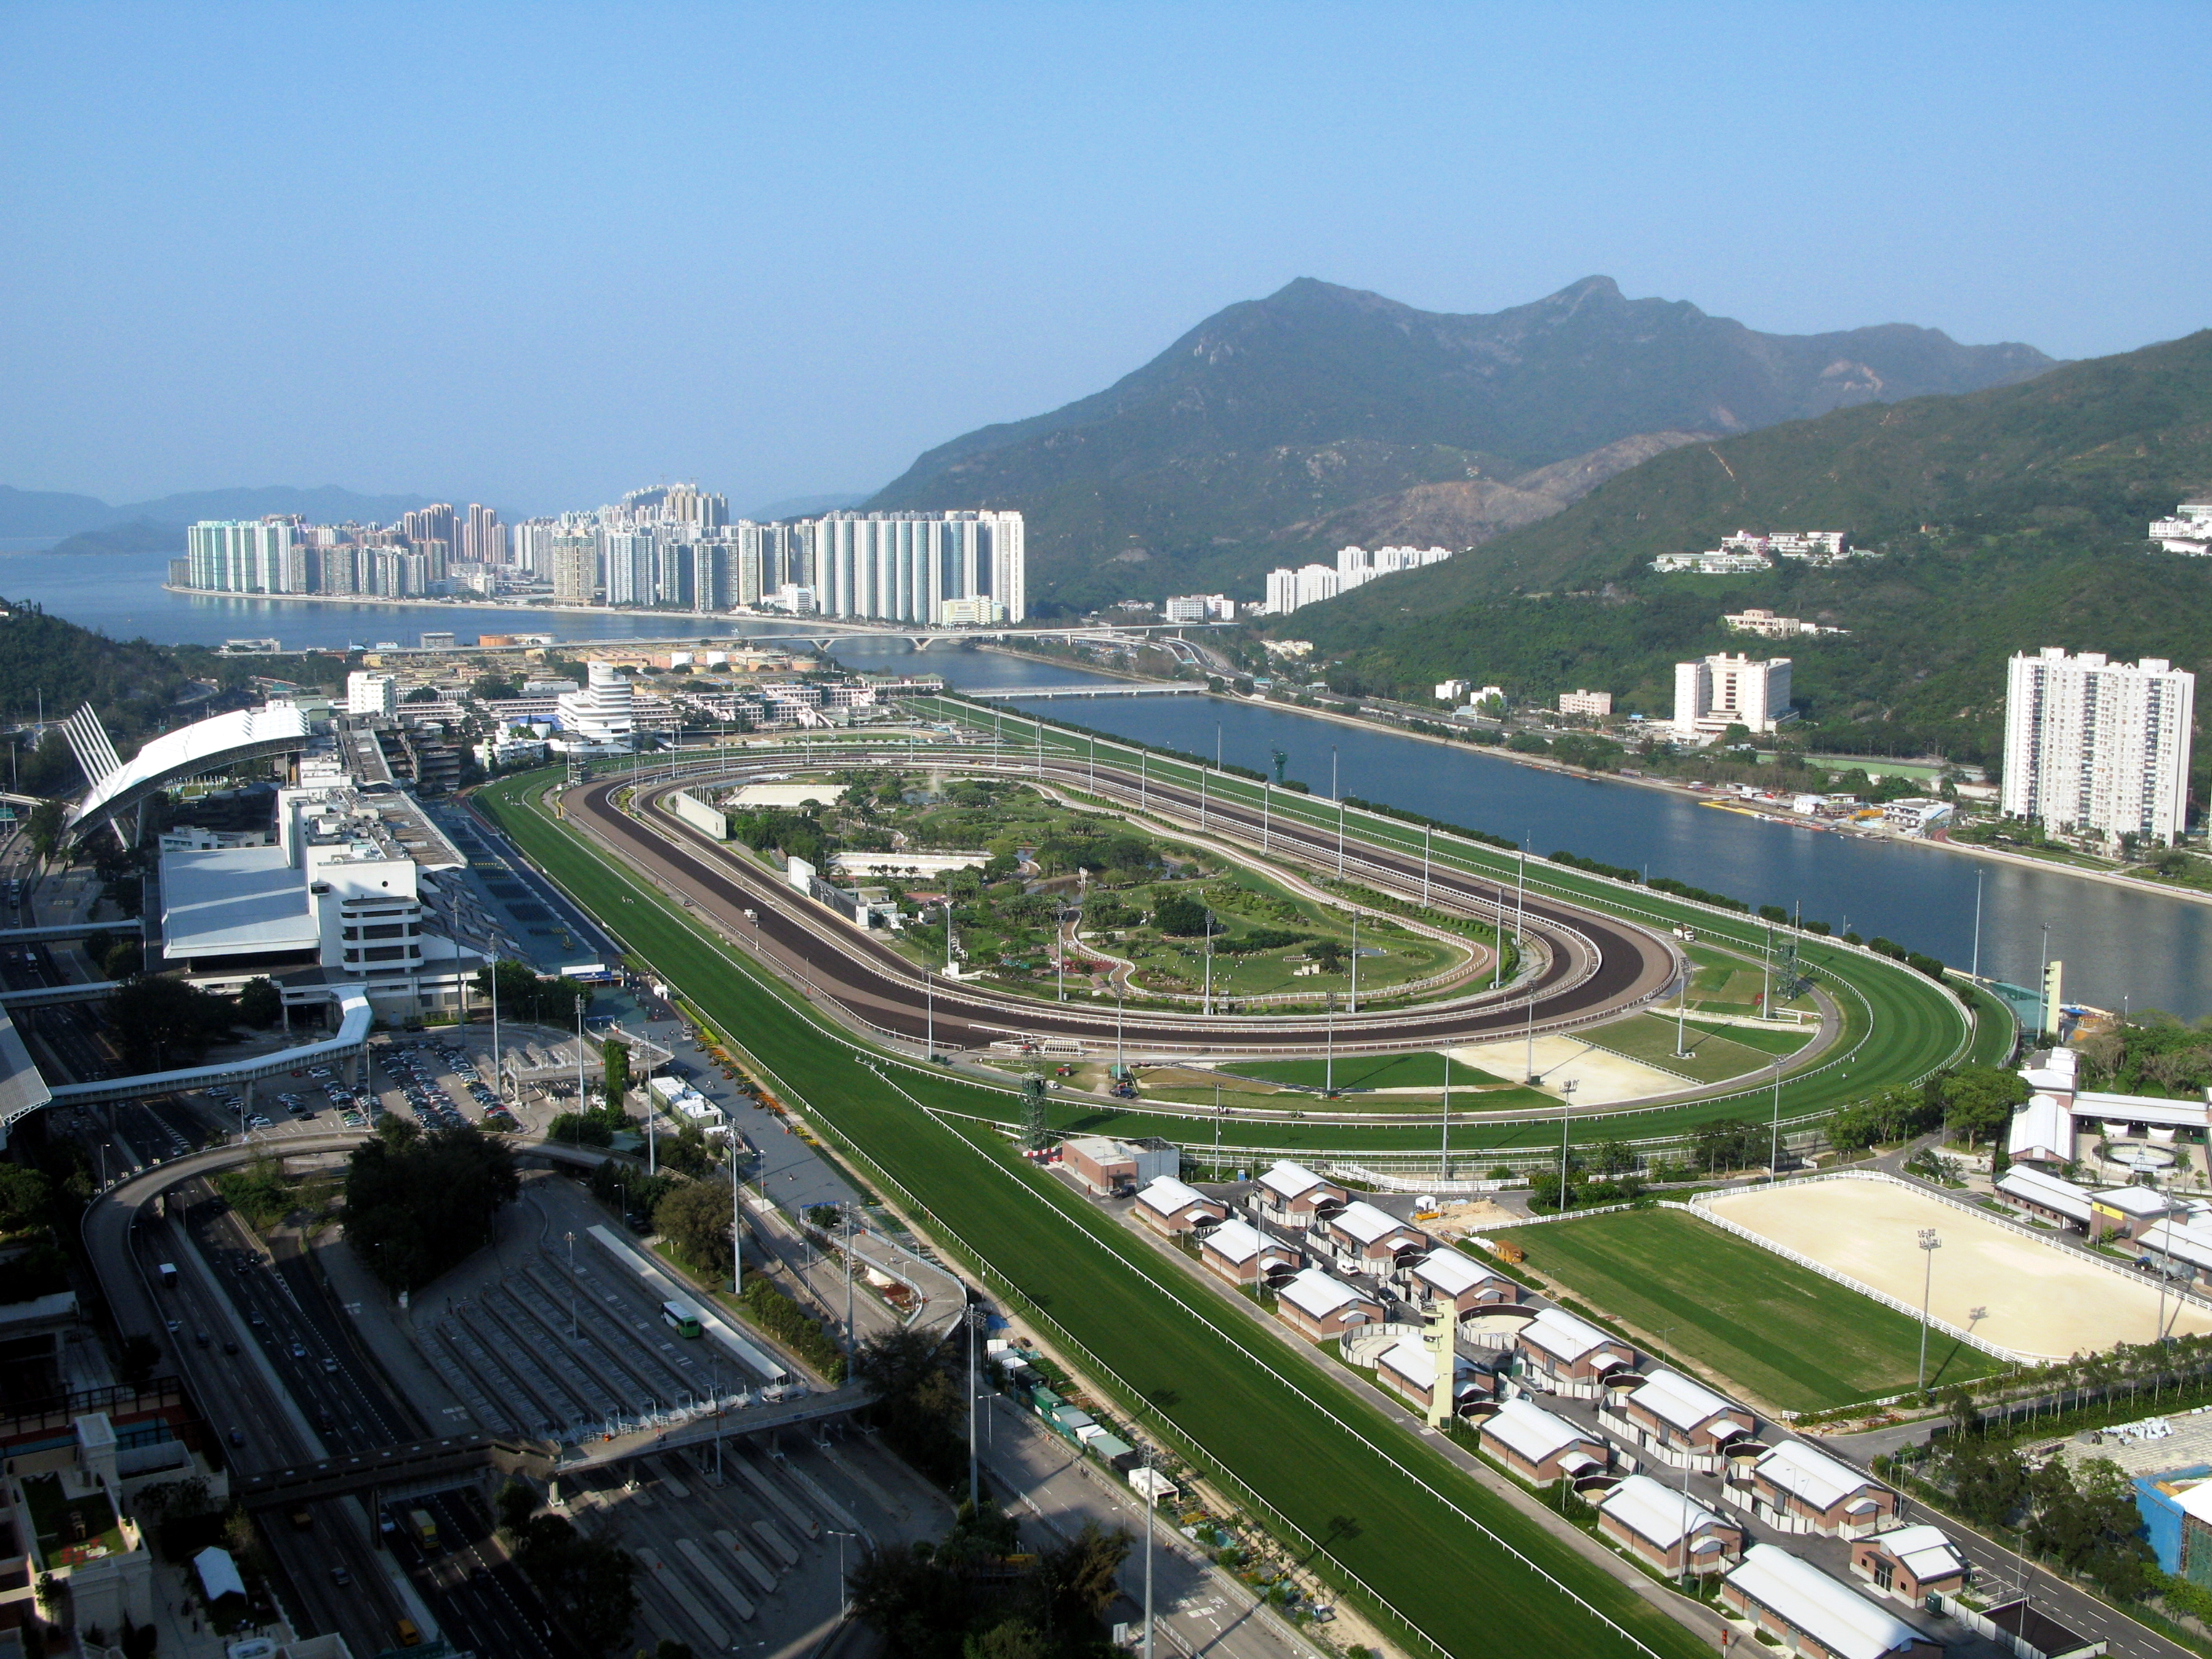 File:Sha Tin Racecourse Overview 2009.jpg - Wikipedia, the free ...